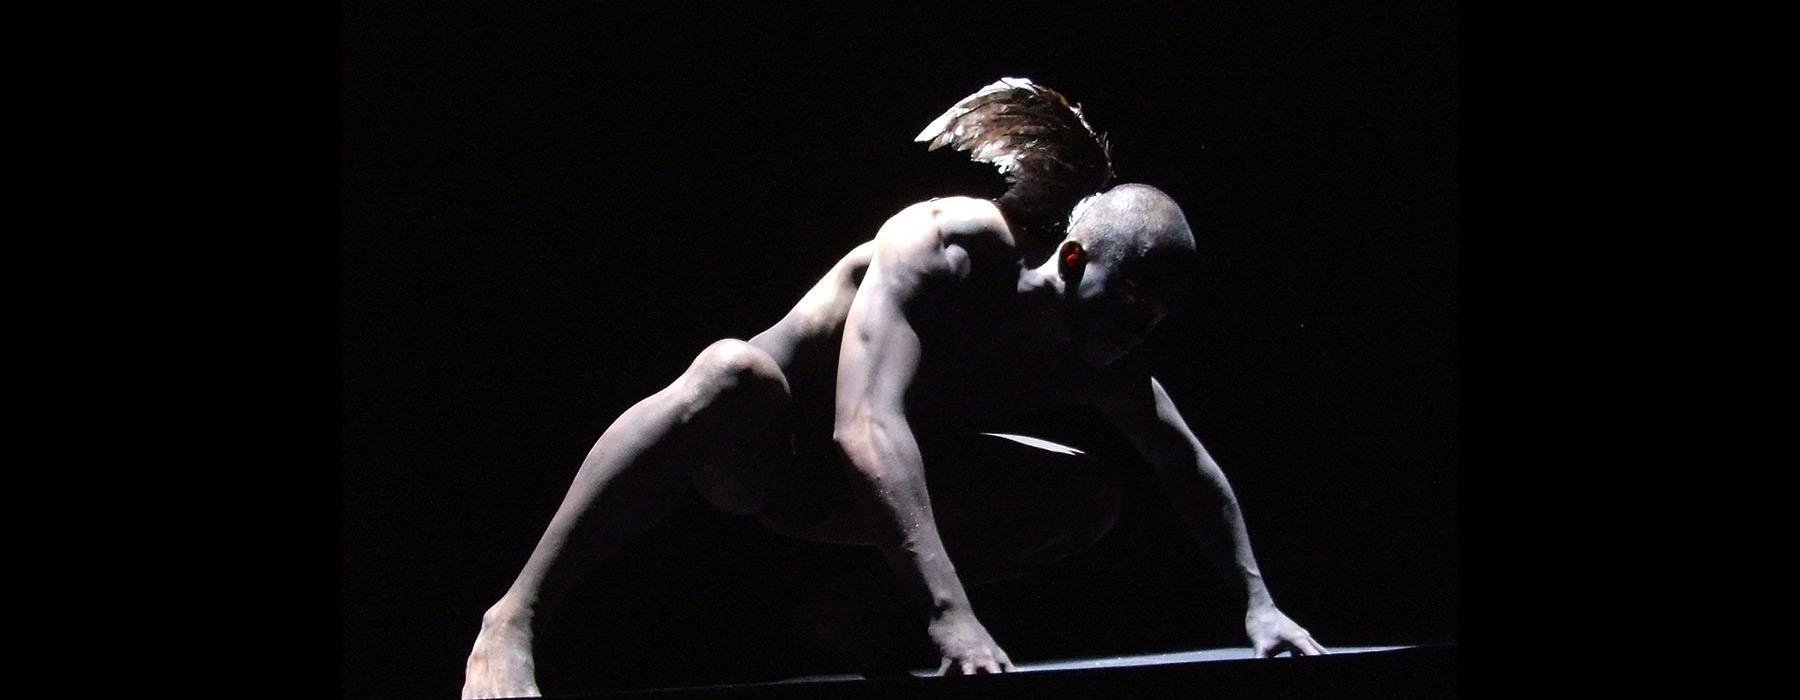 A man down on all fours with small wings stands on stage, the lighting is dark and lit from behind and obscures his face